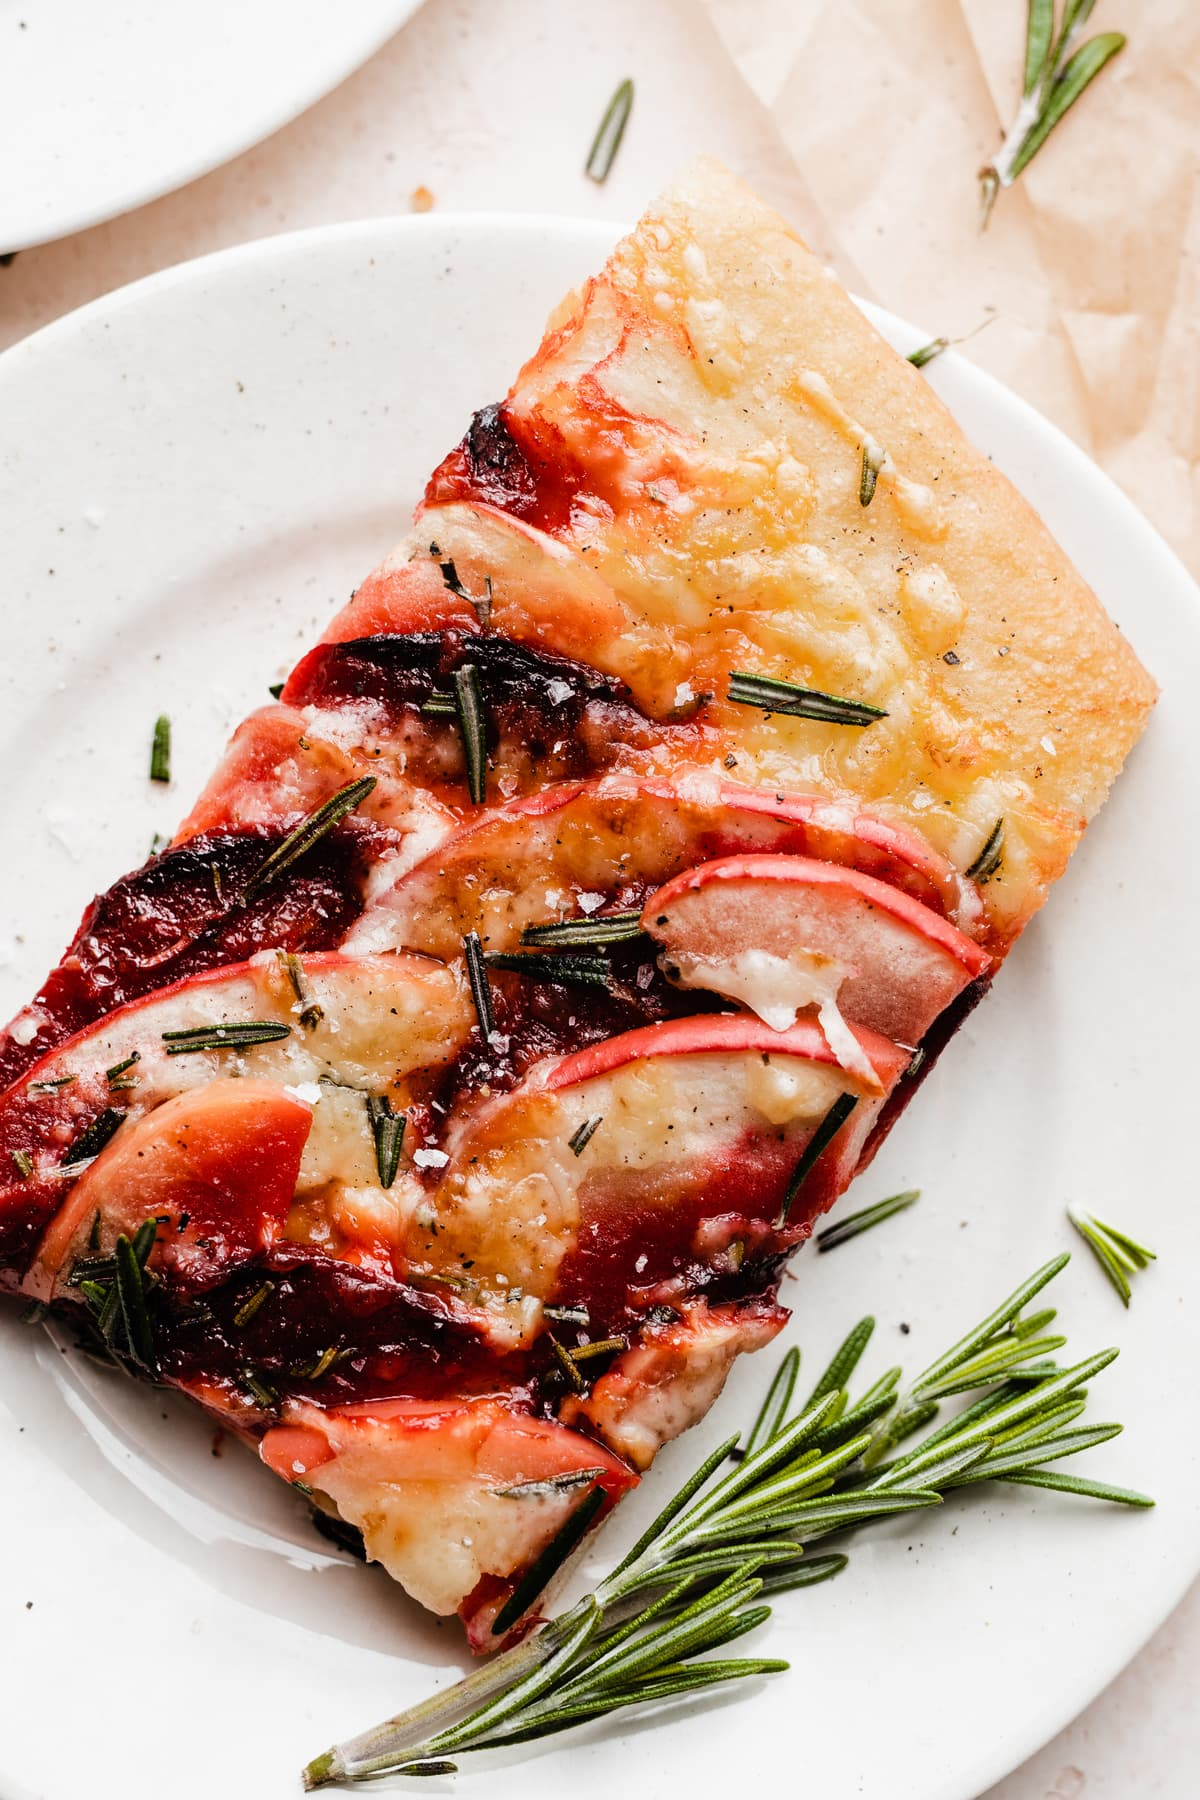 Apple Beet and Cheddar Pizza